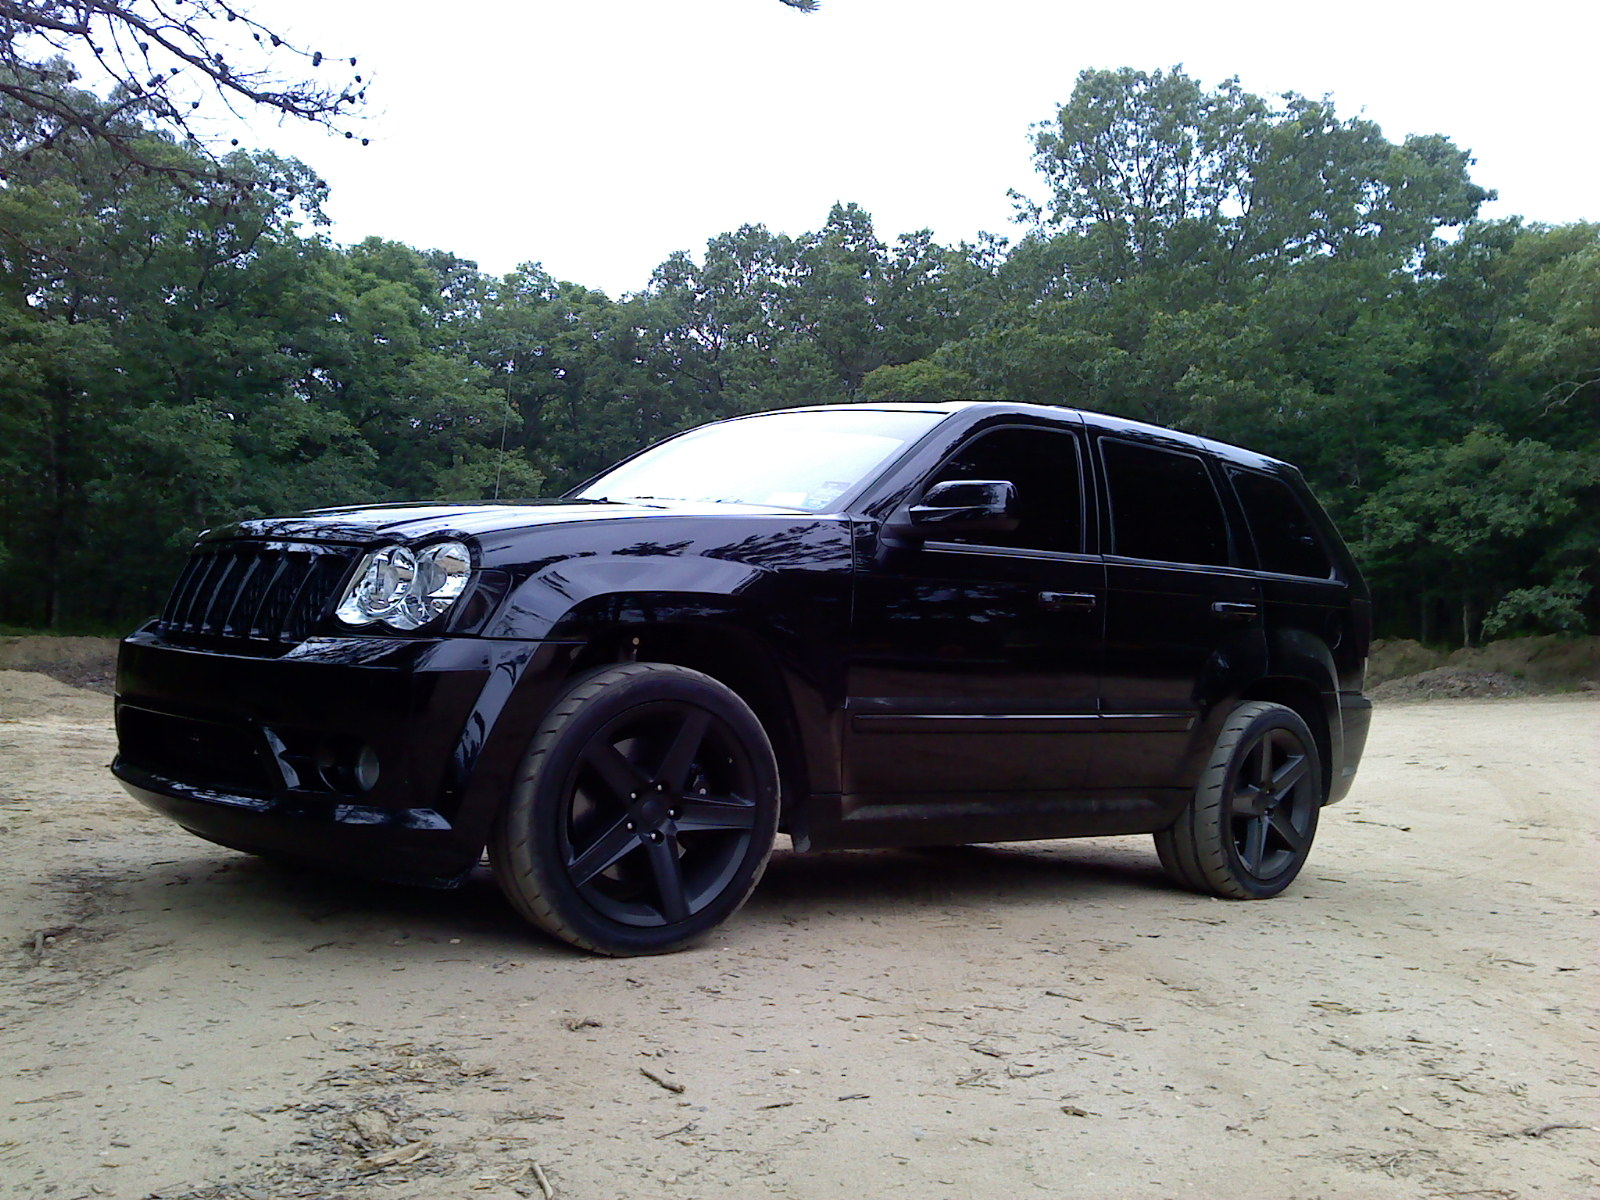 2008 jeep grand cherokee laredo srt8 for sale. Black Bedroom Furniture Sets. Home Design Ideas